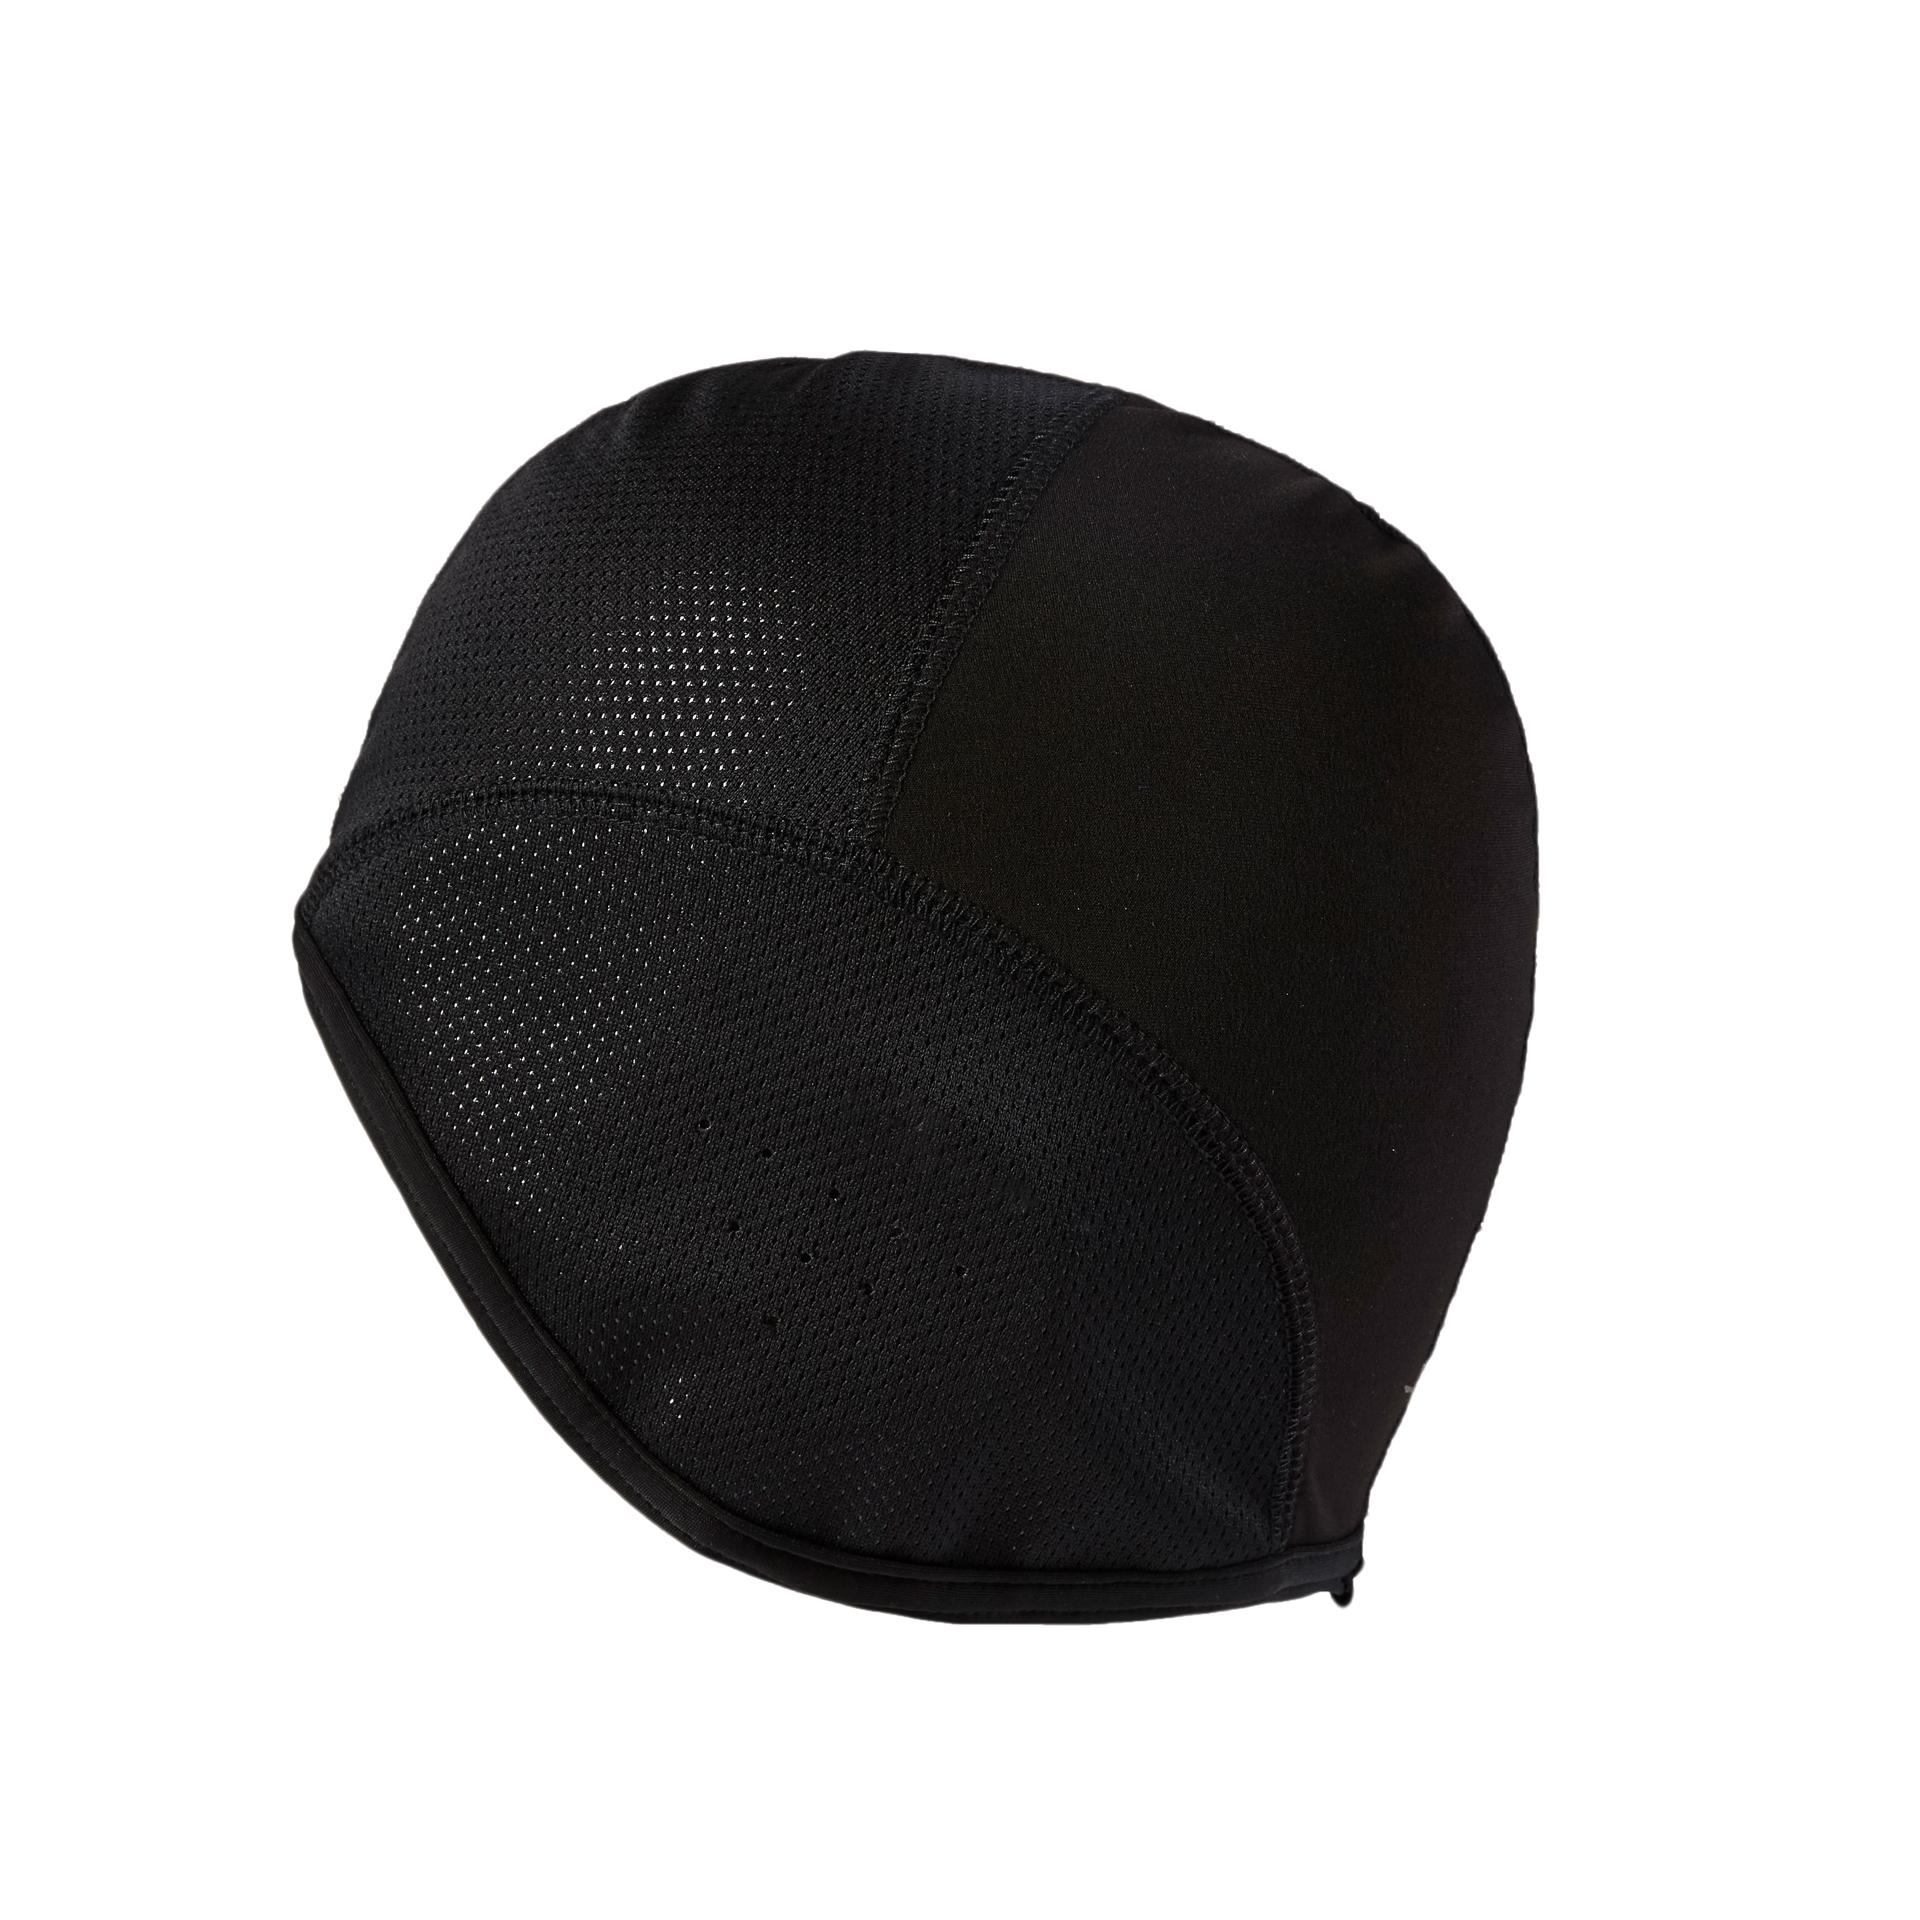 Afbeelding Sealskinz Helmmuts  voor Heren Zwart  / Windproof All Weather Skull Cap Black